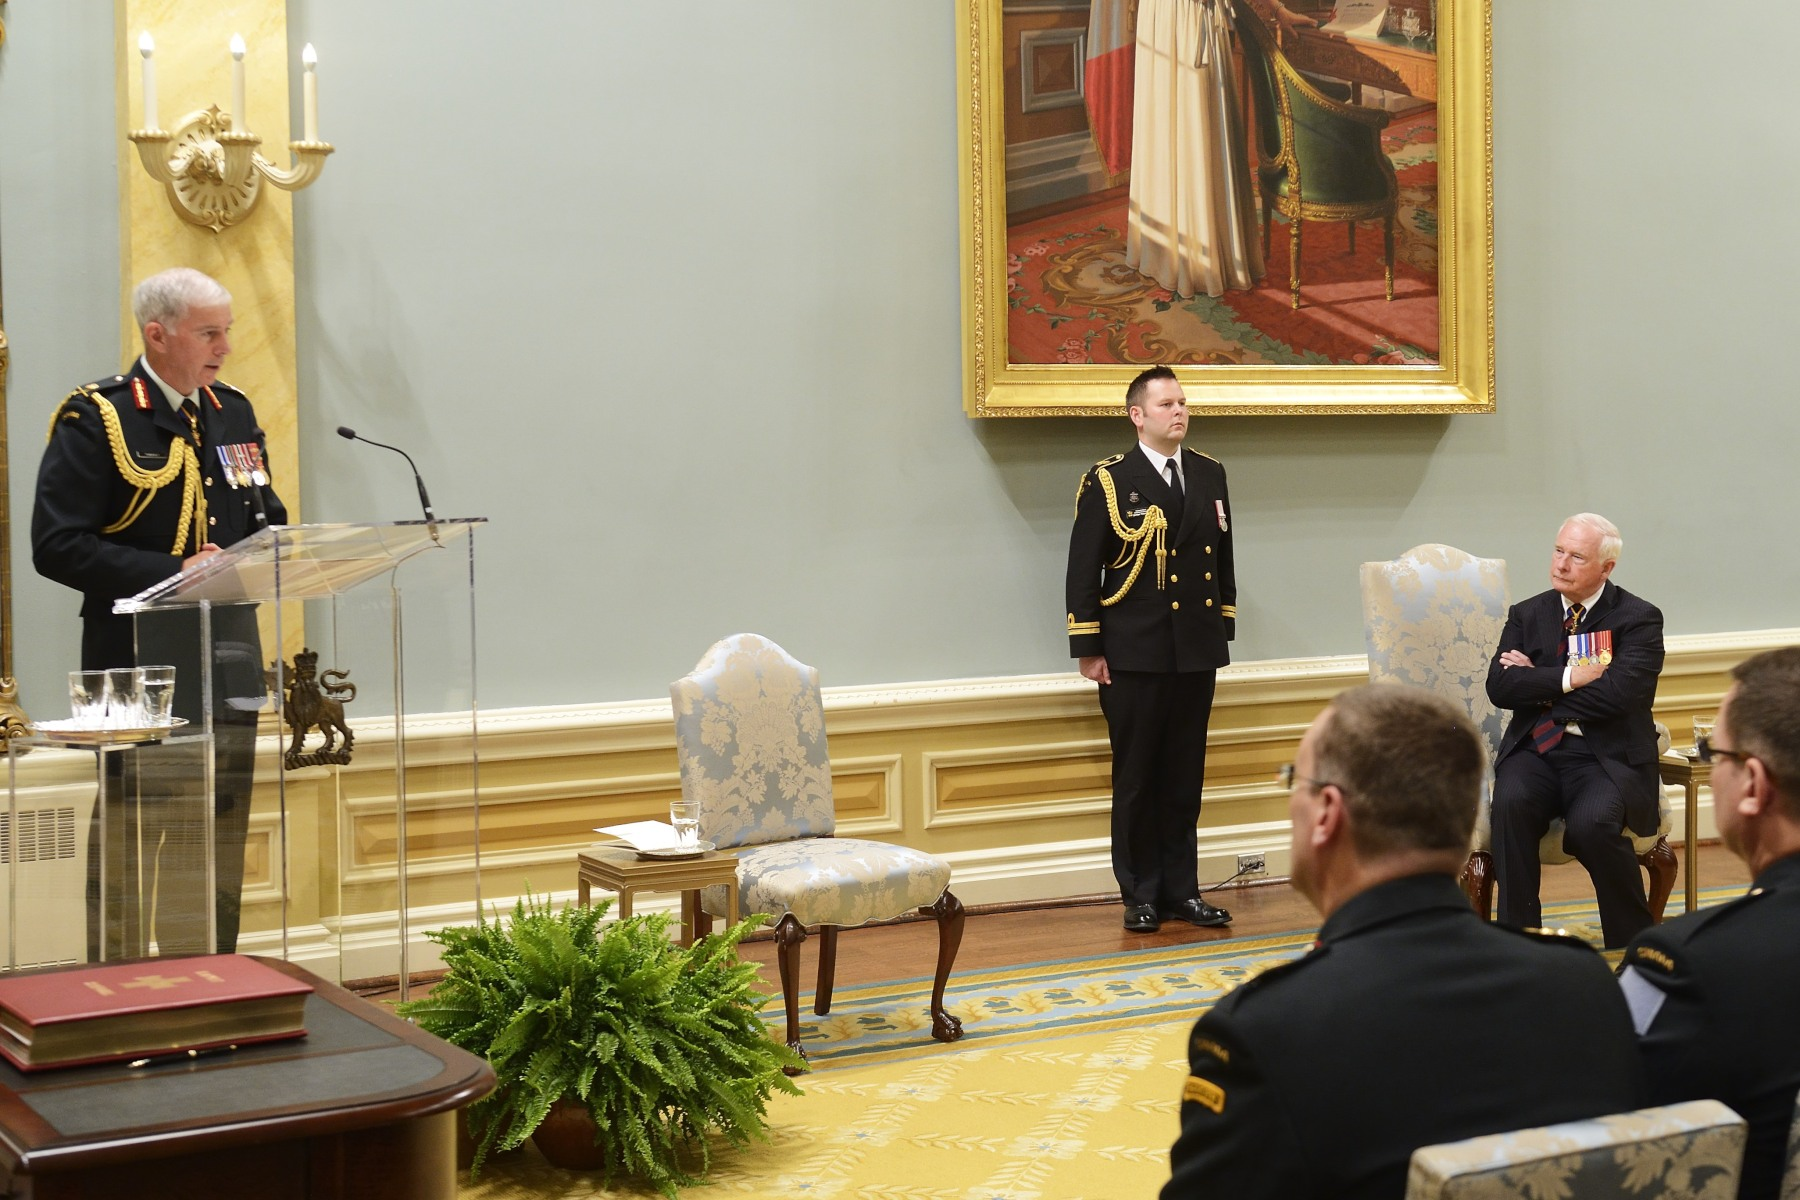 Lieutenant-General Guy Thibault, Vice Chief of the Defence Staff, also spoke during this ceremony.